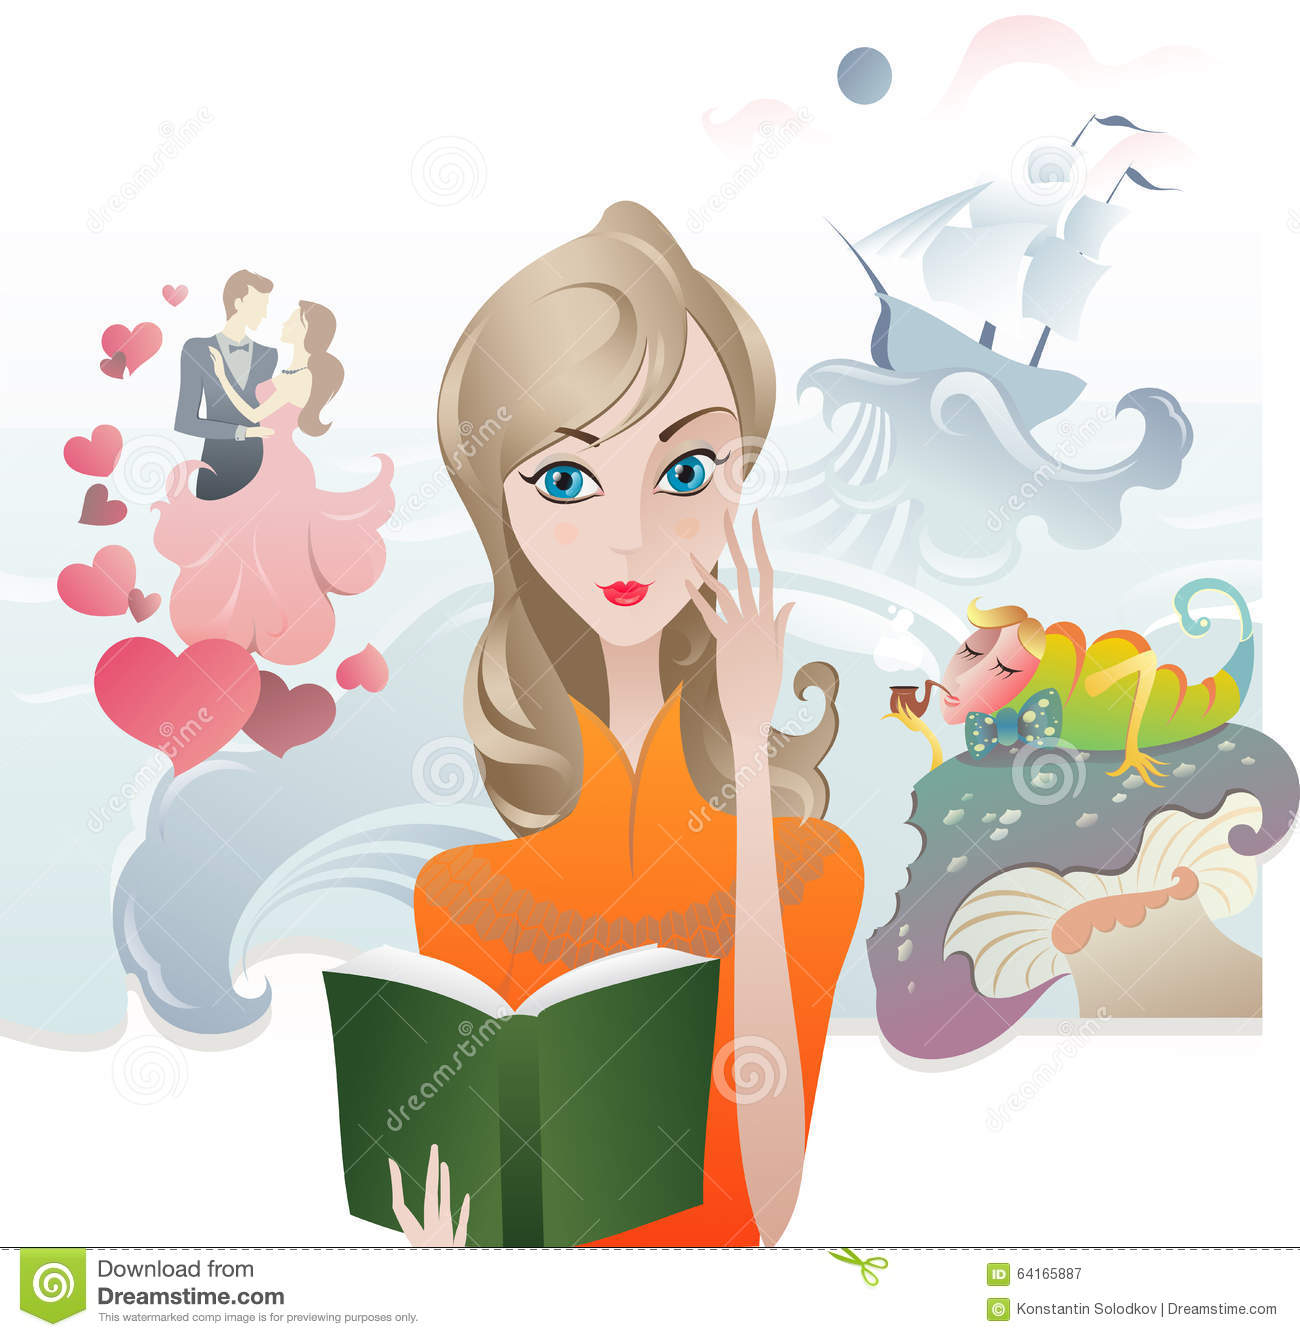 Cute Girl Reading A Book Stock Vector - Image: 64165887